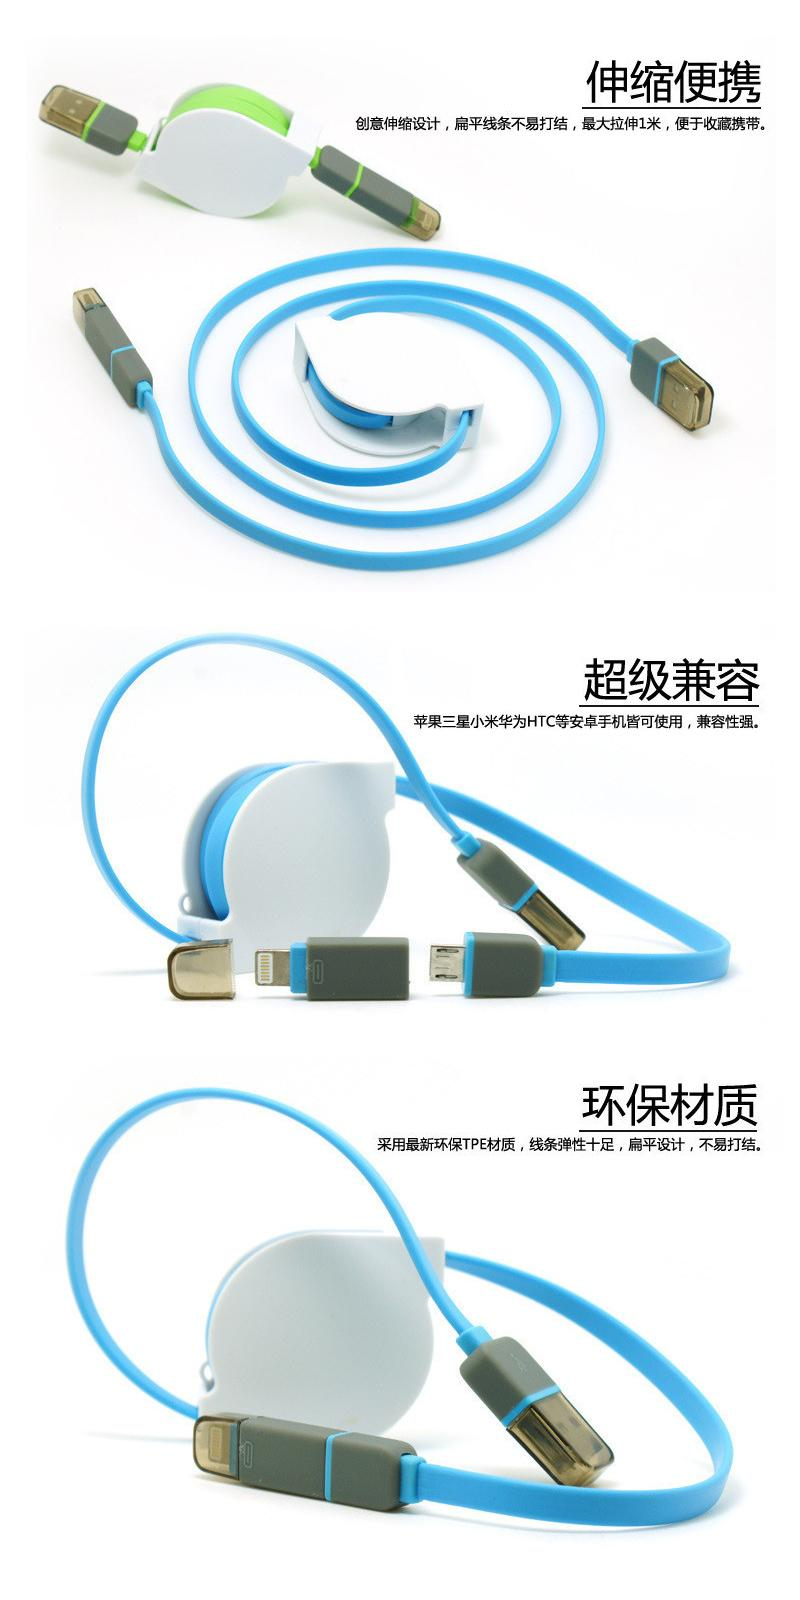 iPhone5/6 Android 2-in-1 MicroUSB Retractable Fast Charging/Data Cable